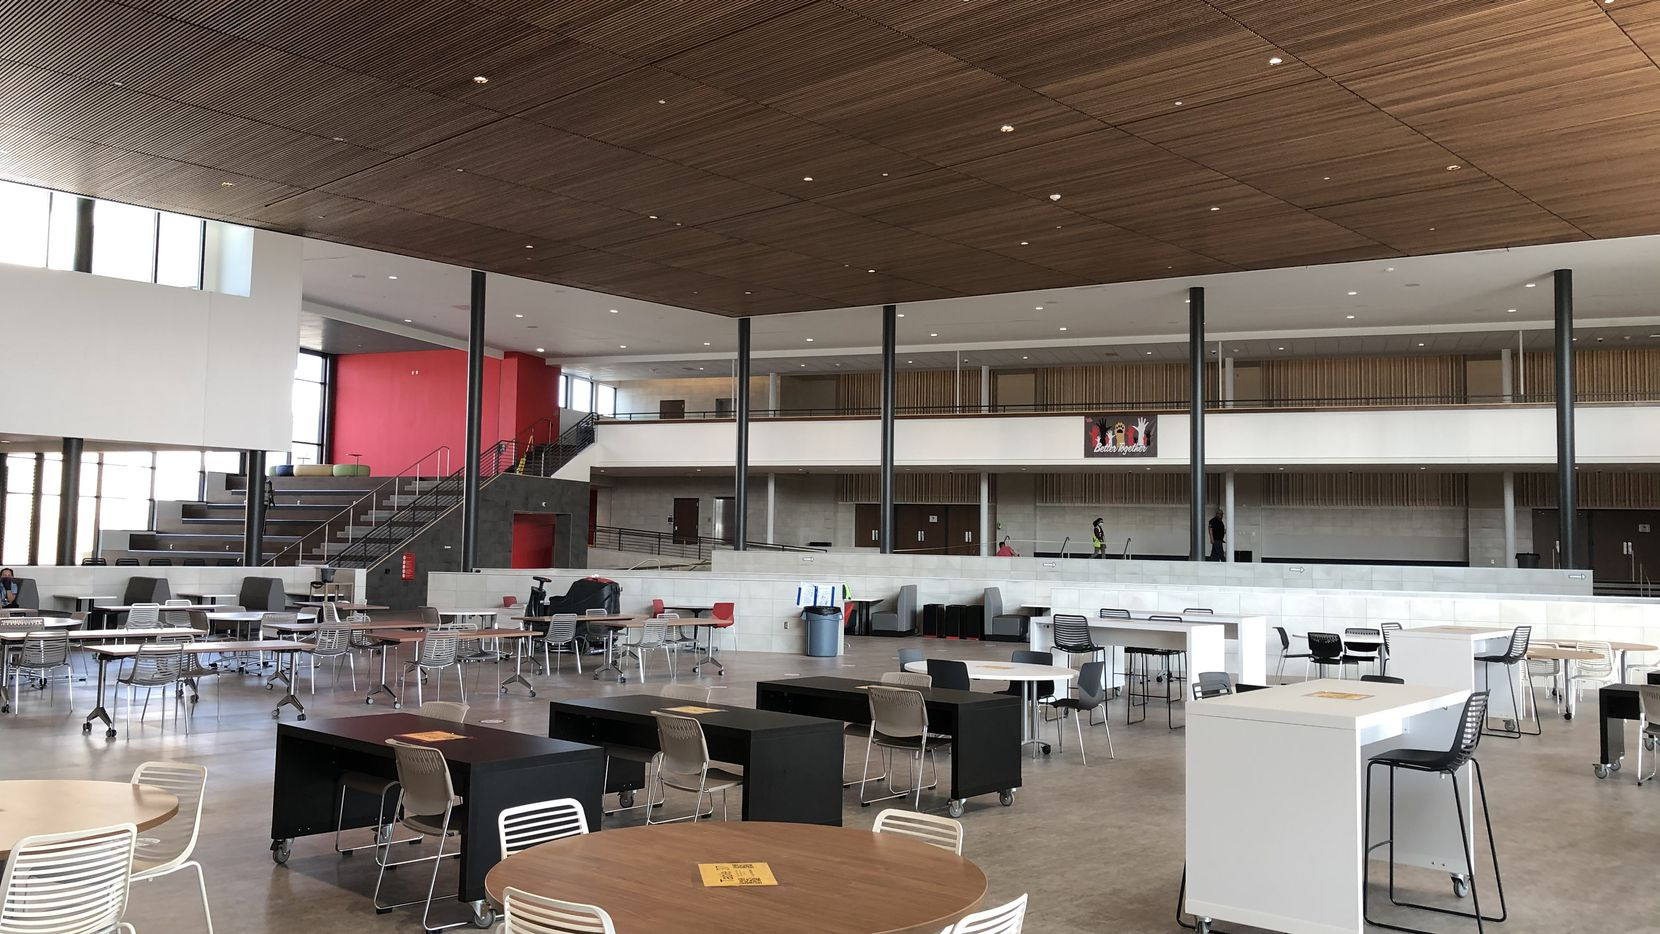 A 144,000-square-foot addition at Lake Highlands High School in Dallas, part of the Richardson school district,  connects the ninth-grade center with the existing high school facility and provides an expanded cafeteria and kitchen, commons spaces, and a new library.